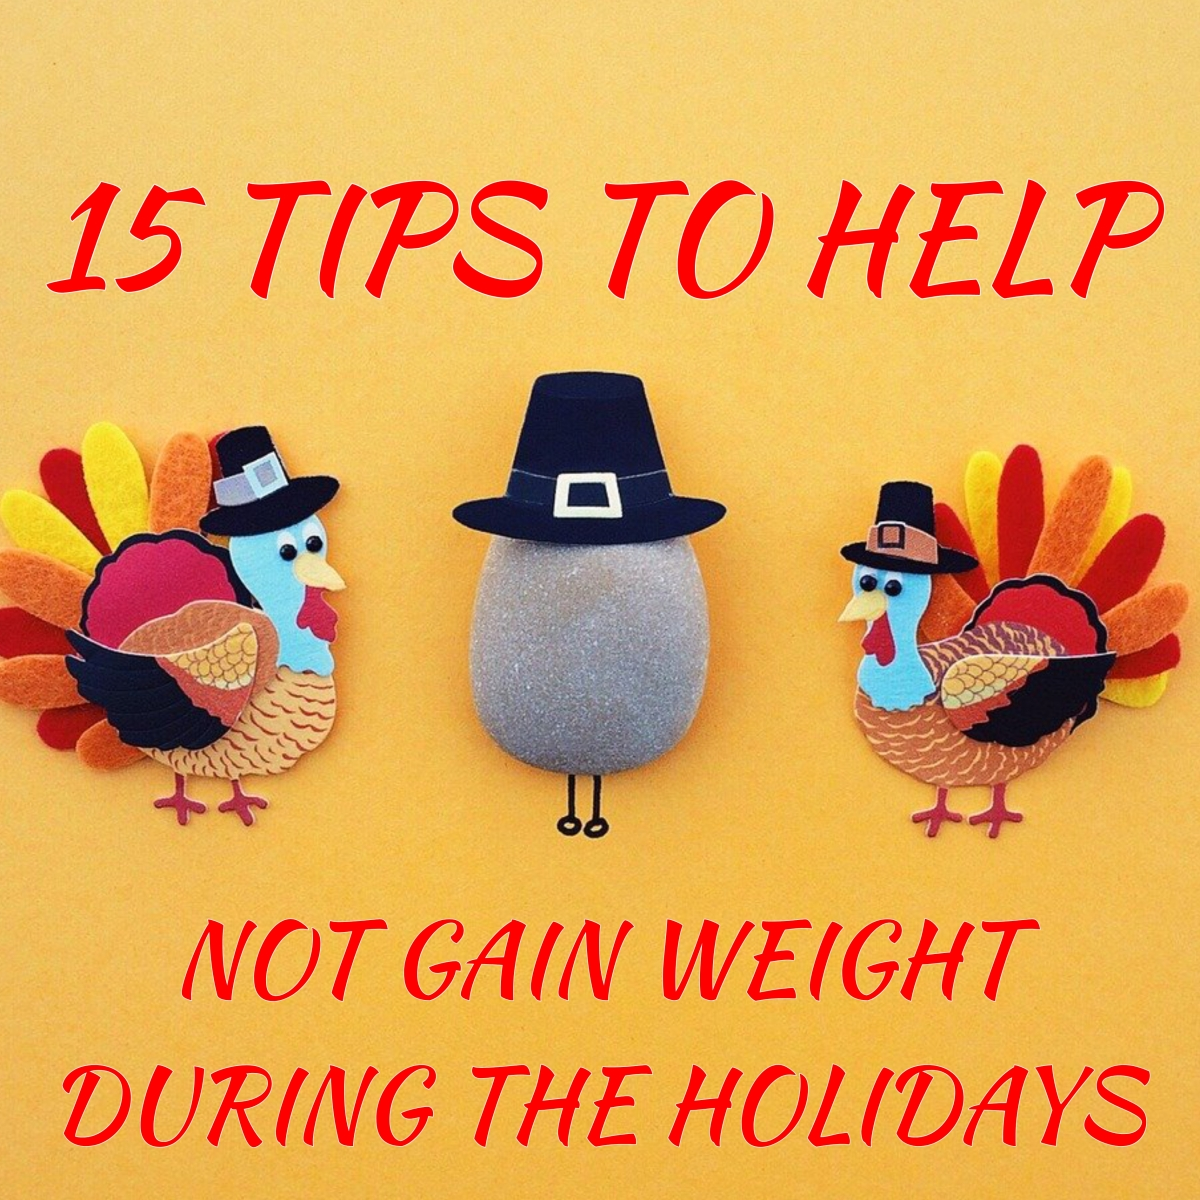 15 Tips To NOT Gain Weight During TheHolidays